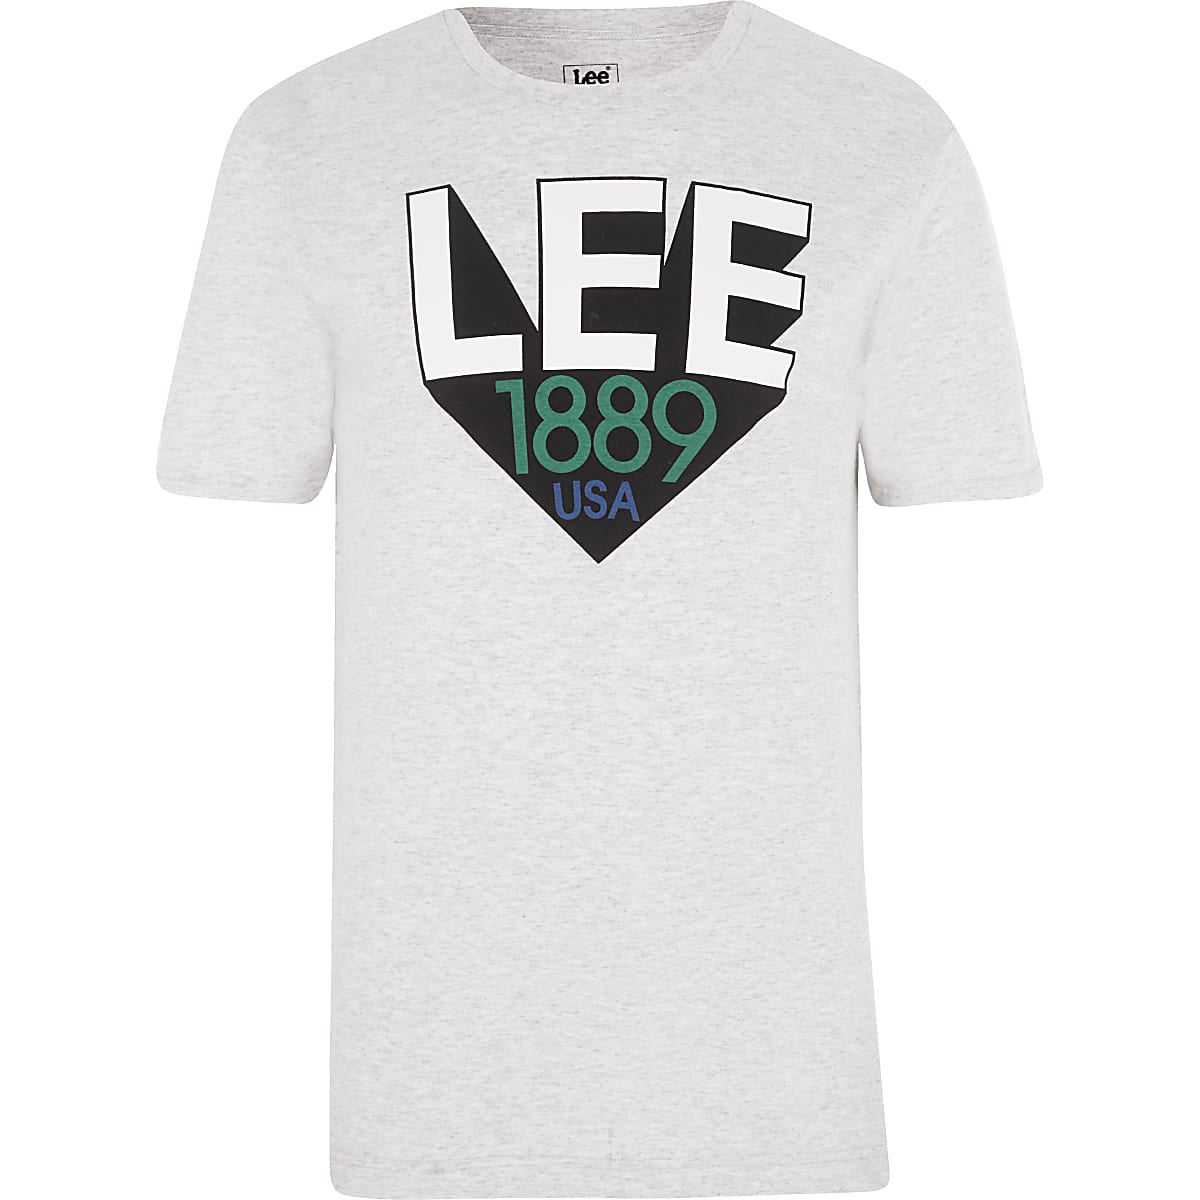 Lee grey logo print T-shirt